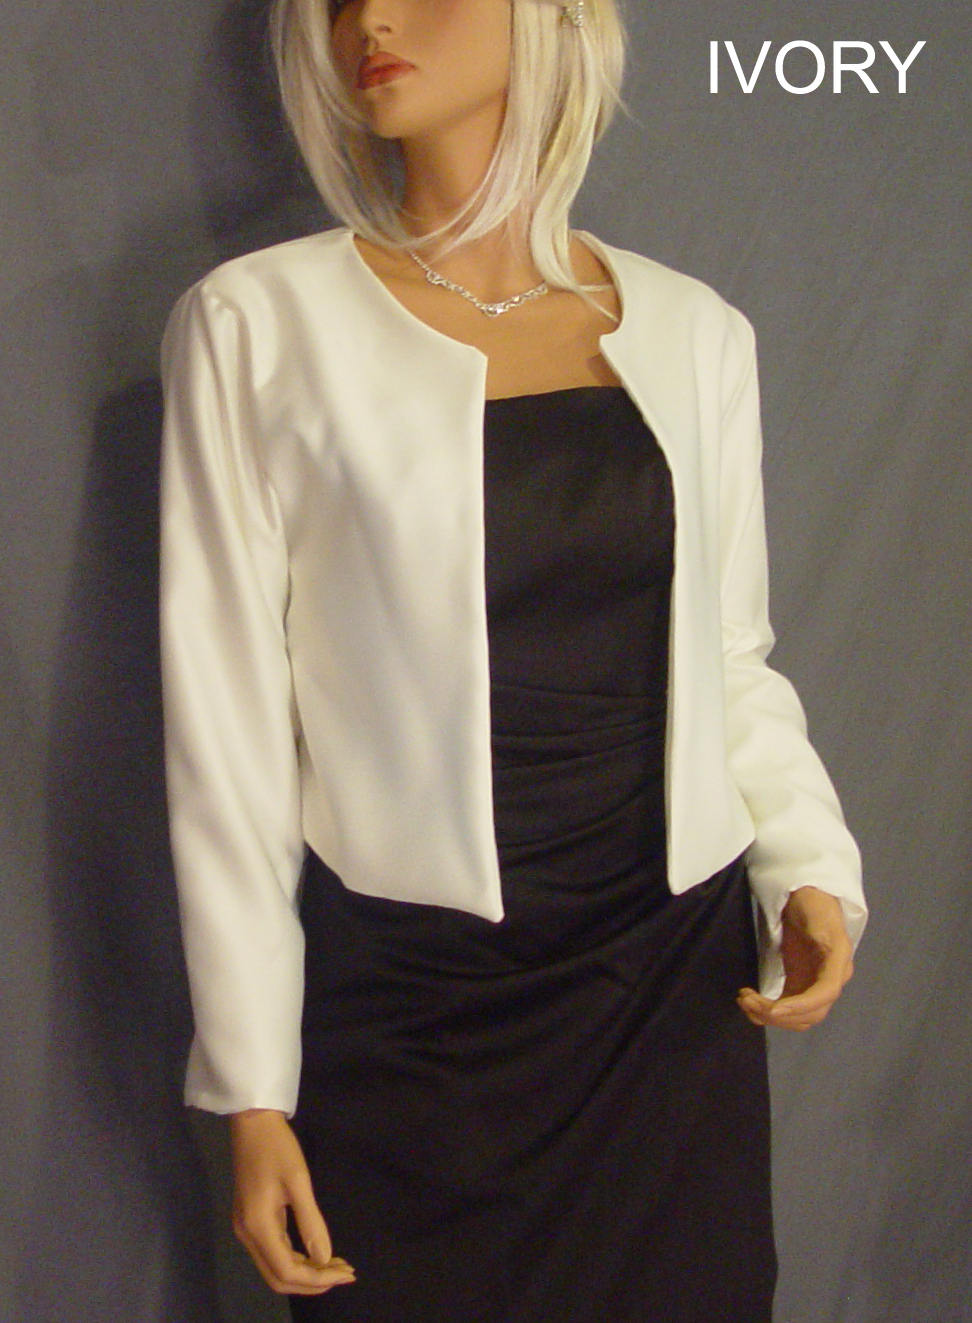 Satin Bolero Jacket With Long Sleeve Hip Length Wedding Shrug Coat Cover Up Sba130 Available in Ivory & 5 Other Colors. Small - Plus Size